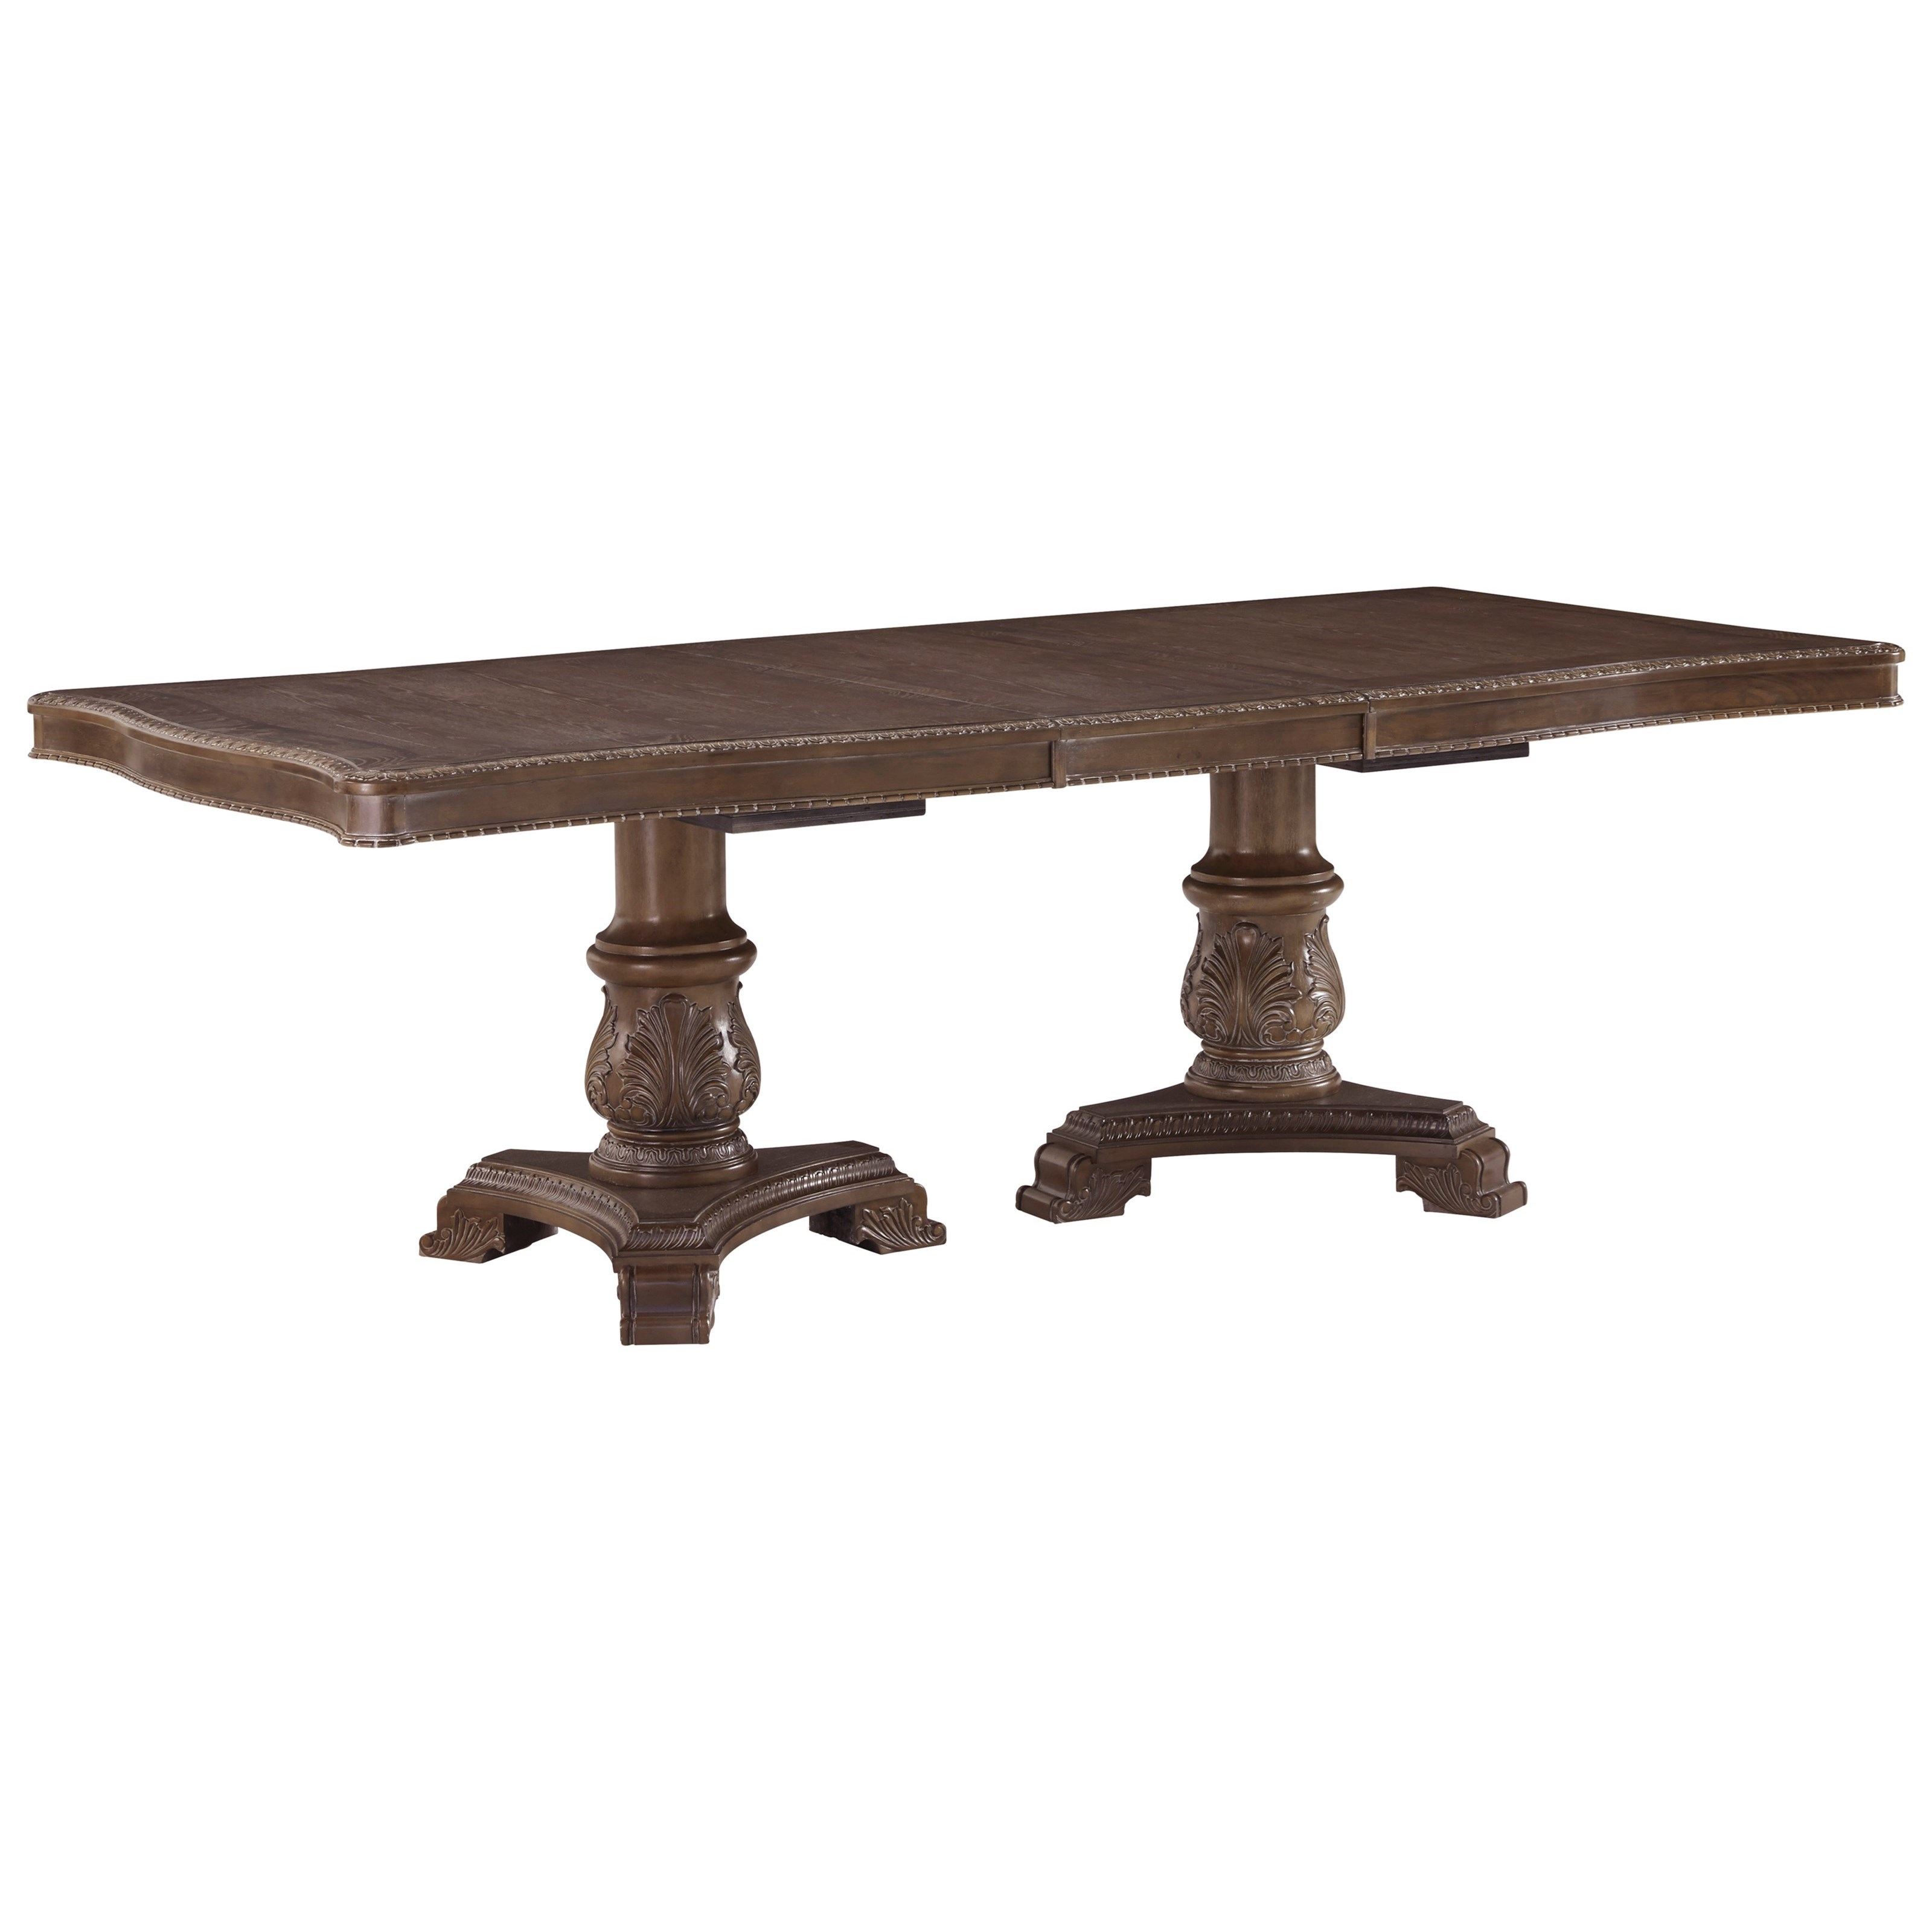 Charmond Rectangular Dining Room Extension Table by Ashley (Signature Design) at Johnny Janosik